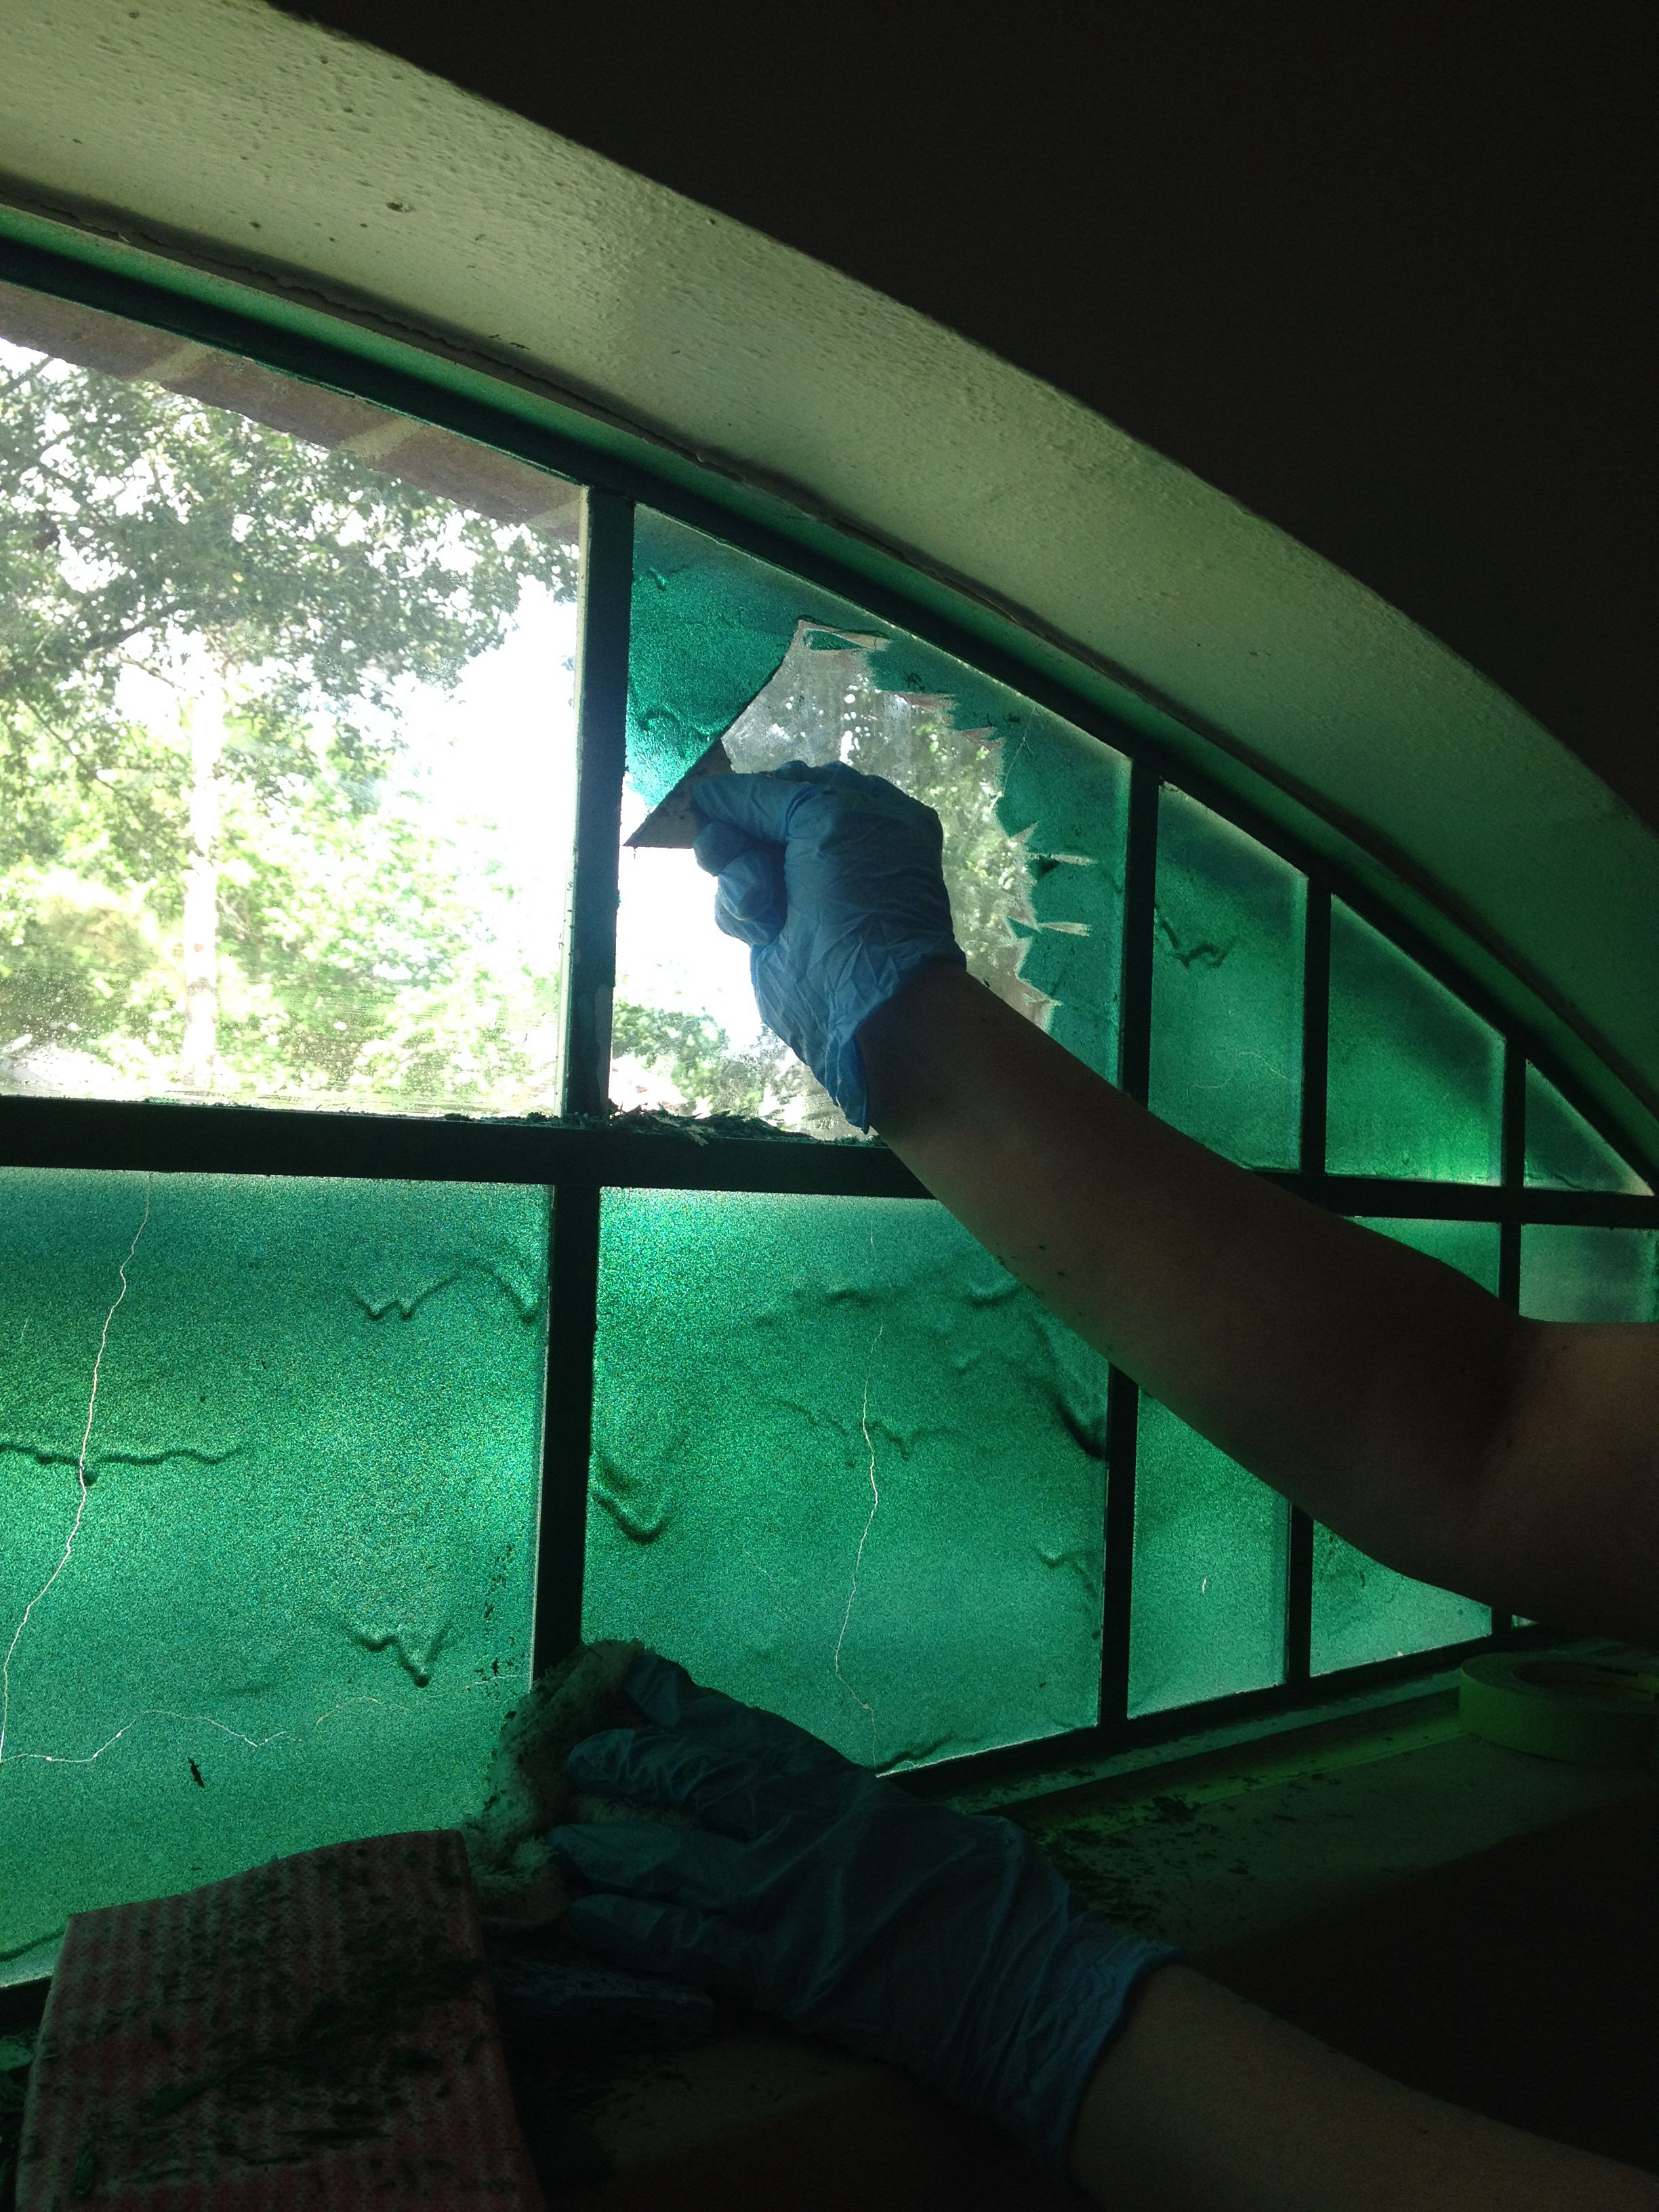 How to remove paint from a glass window spray googone found at home depot onto the glass window then gently scrape away paint with a razor blade